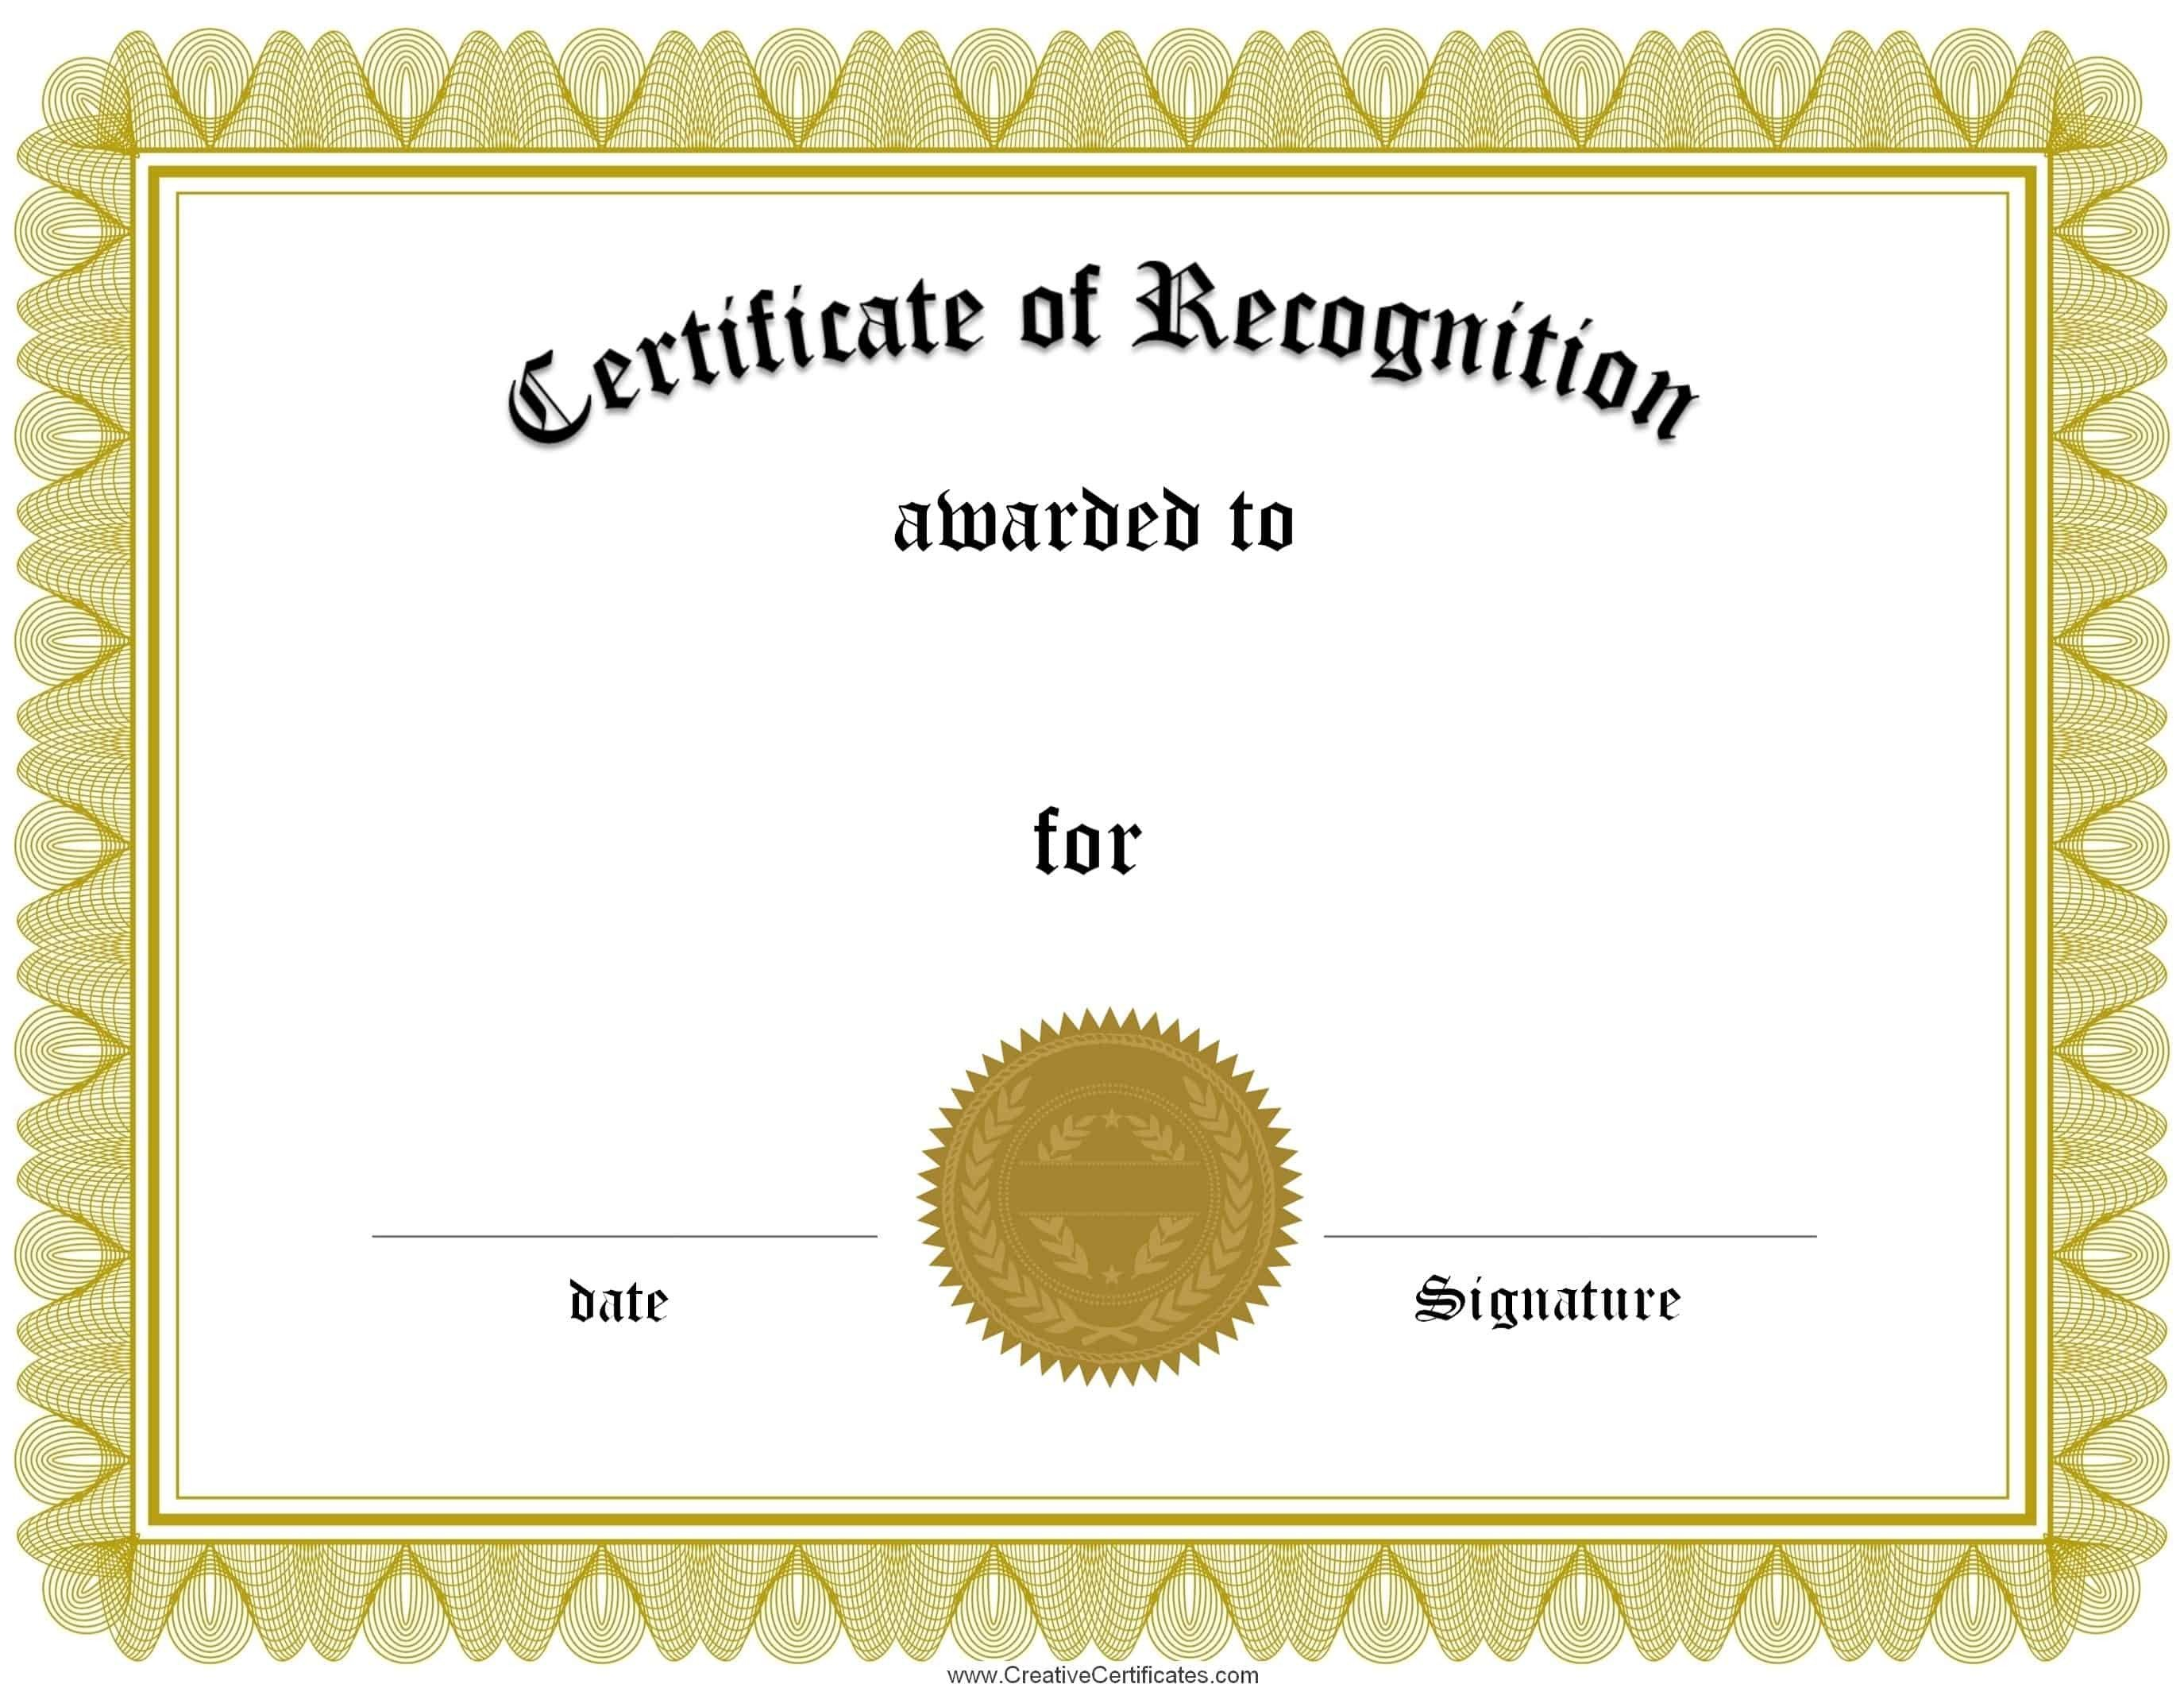 Certificate Of Recognition Template Free Certificate Of Recognition Template